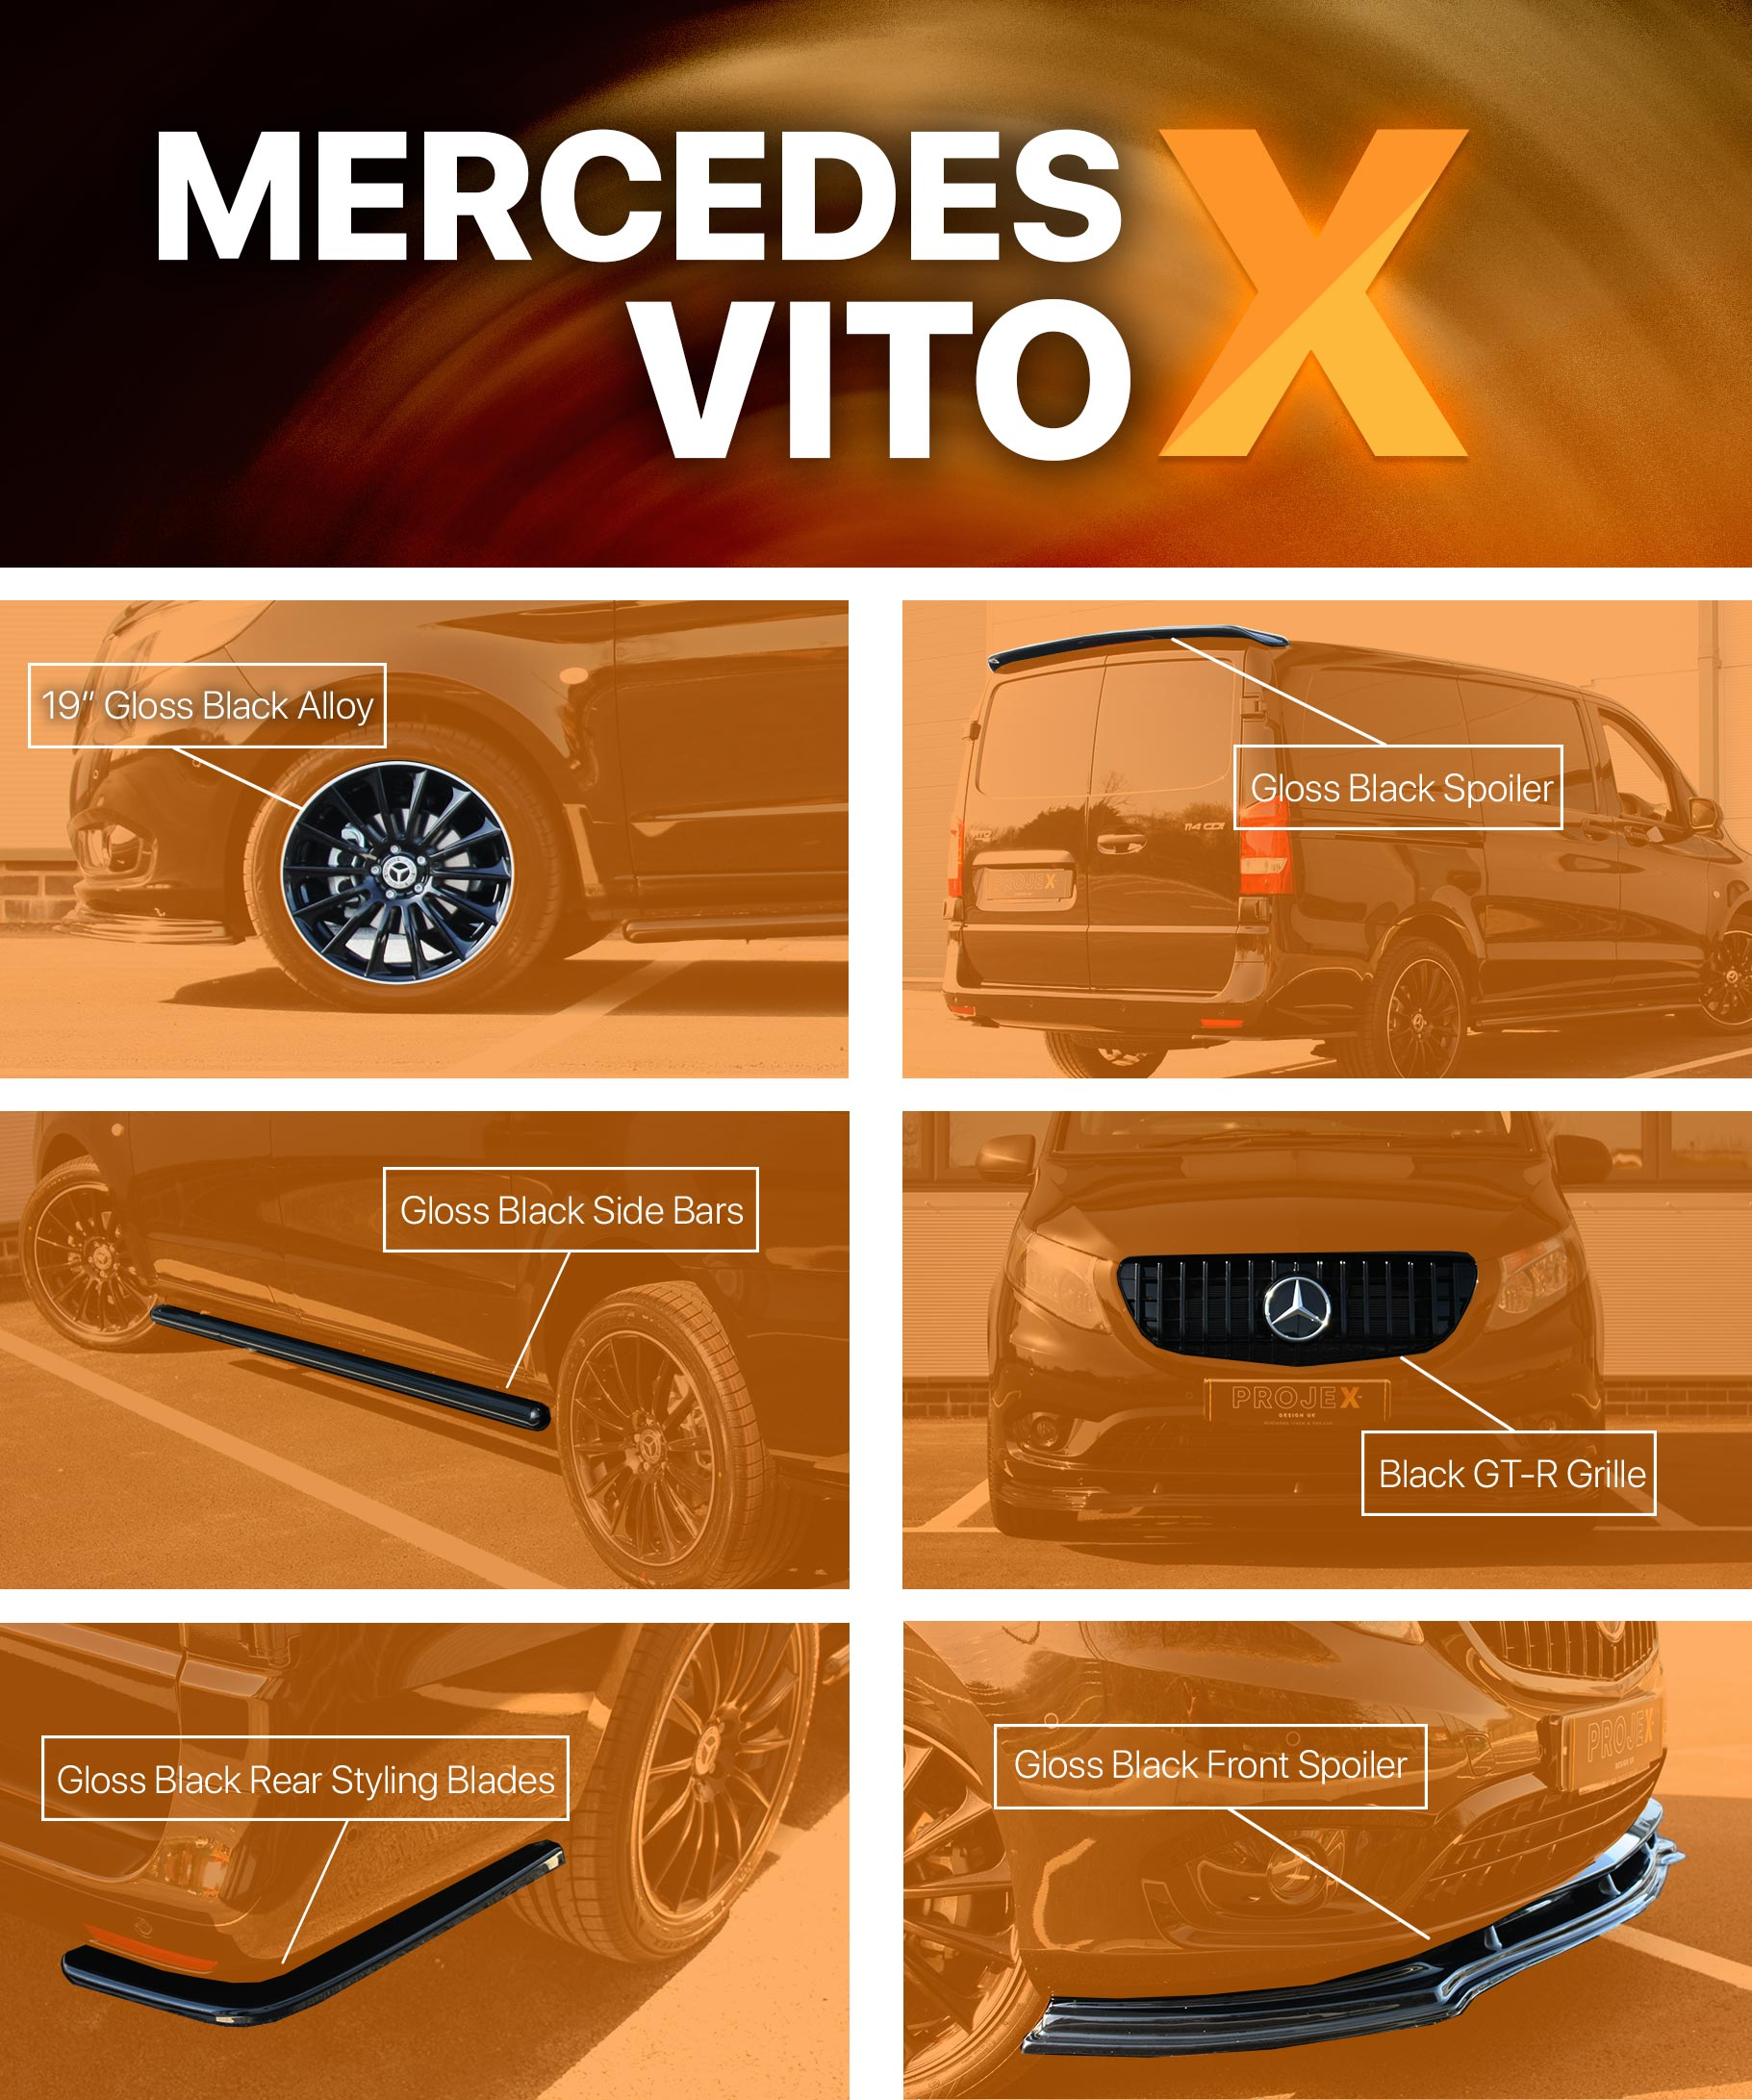 vitox_infoposter